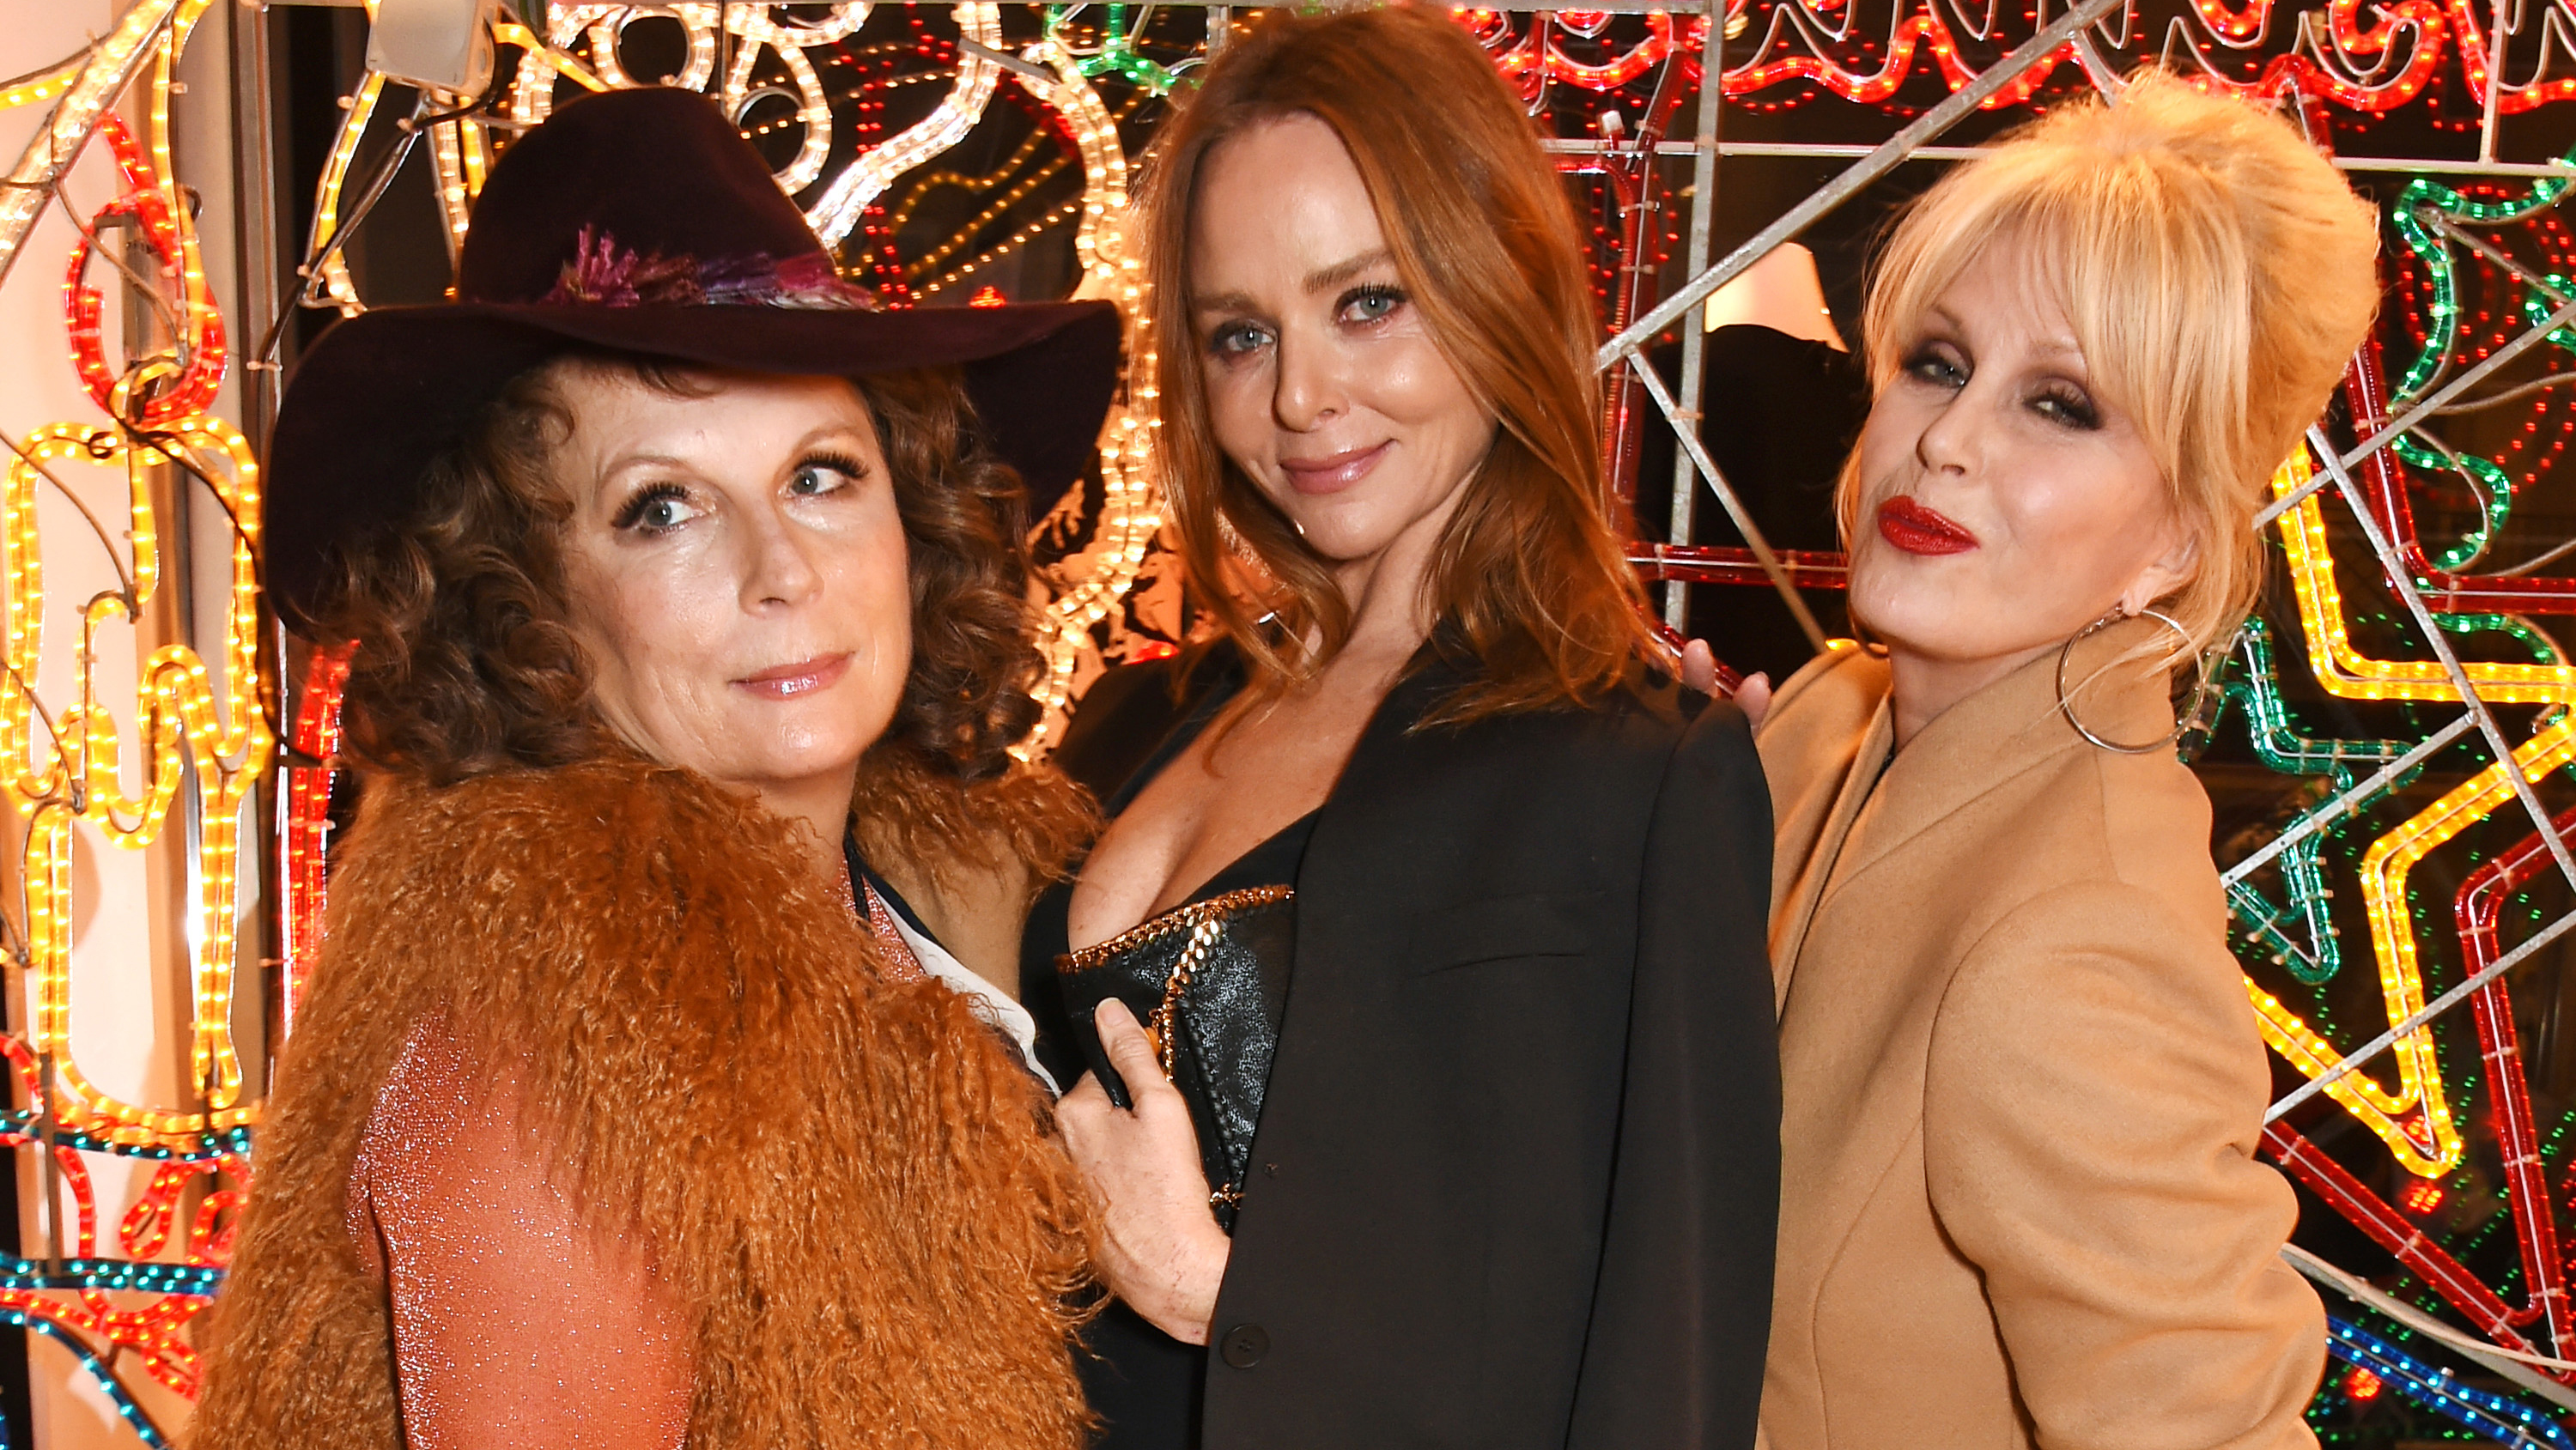 It wouldn't be Christmas without a little ceremony, and while for most, that involves stringing up the tree after a few wines on December 1, for Stella McCartney it means a lavish 'Christmas Lights Switch-On'. <em>Absolutely Fabulous</em>' Edina and Patsy got into the festive spirit, as did Salma Hayek, Lily Cole, and even a Rolling Stone. Click through to see the stylish guests do Christmas.